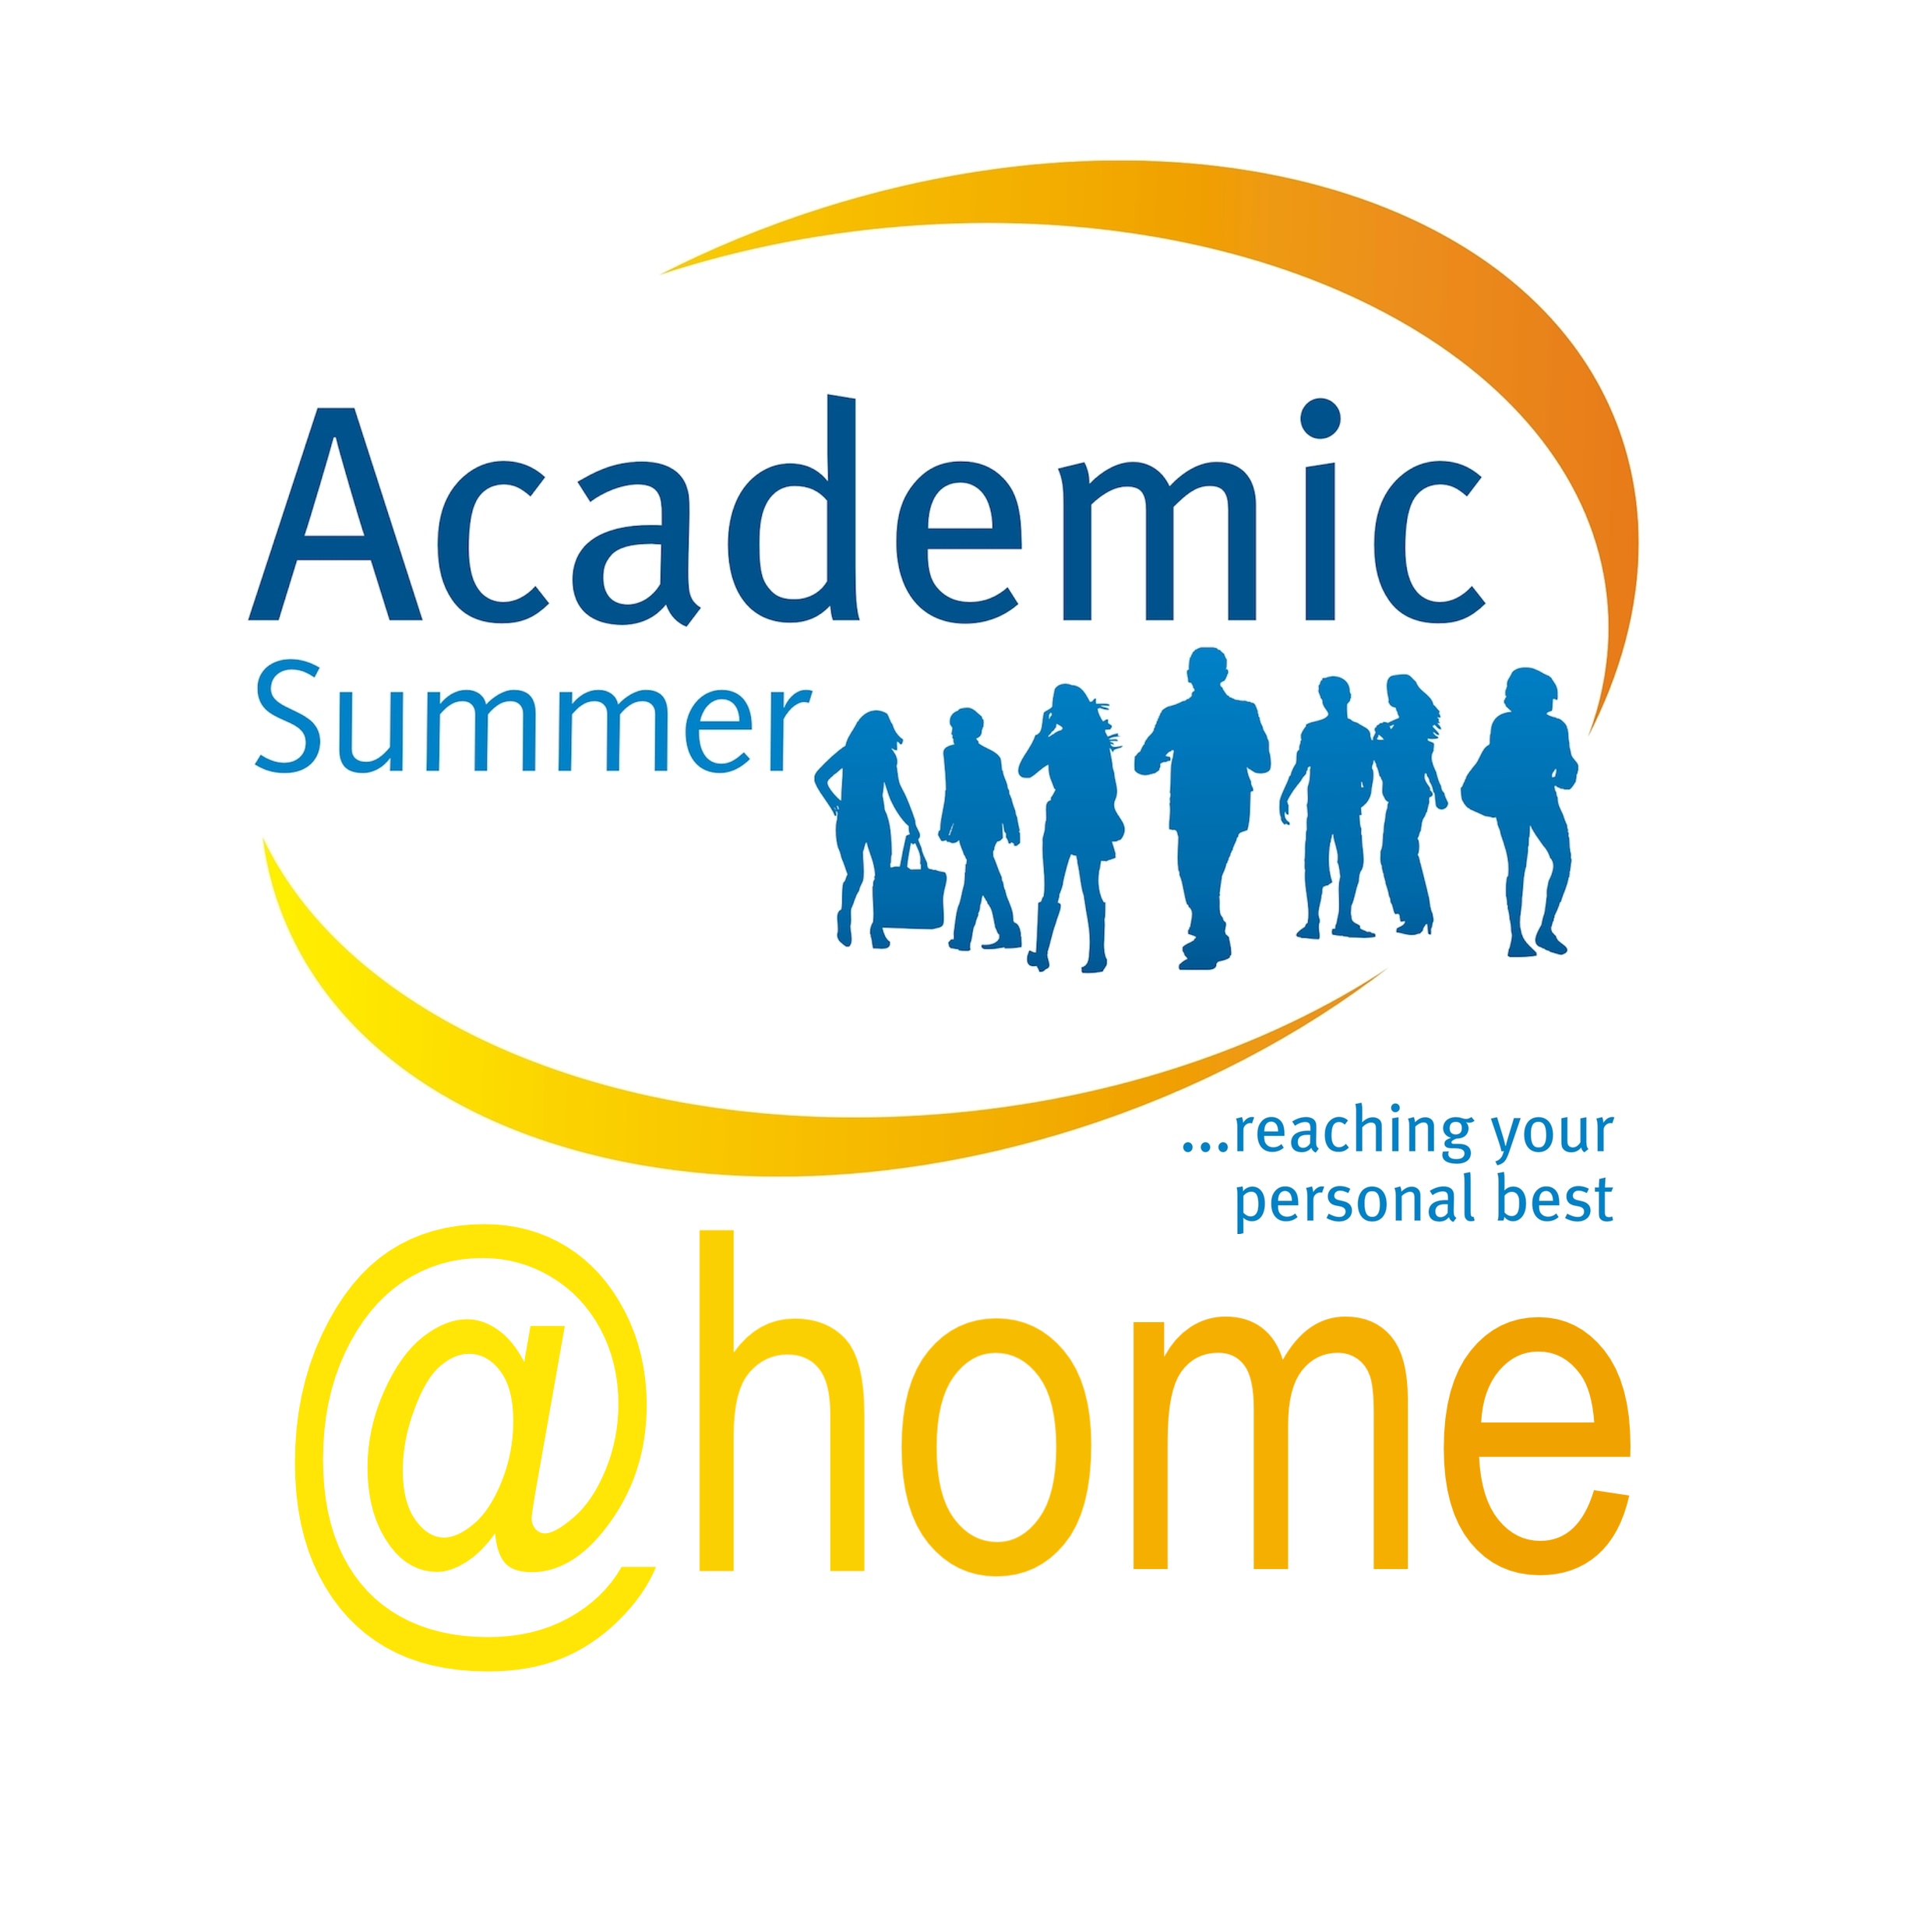 Academic Summer @home